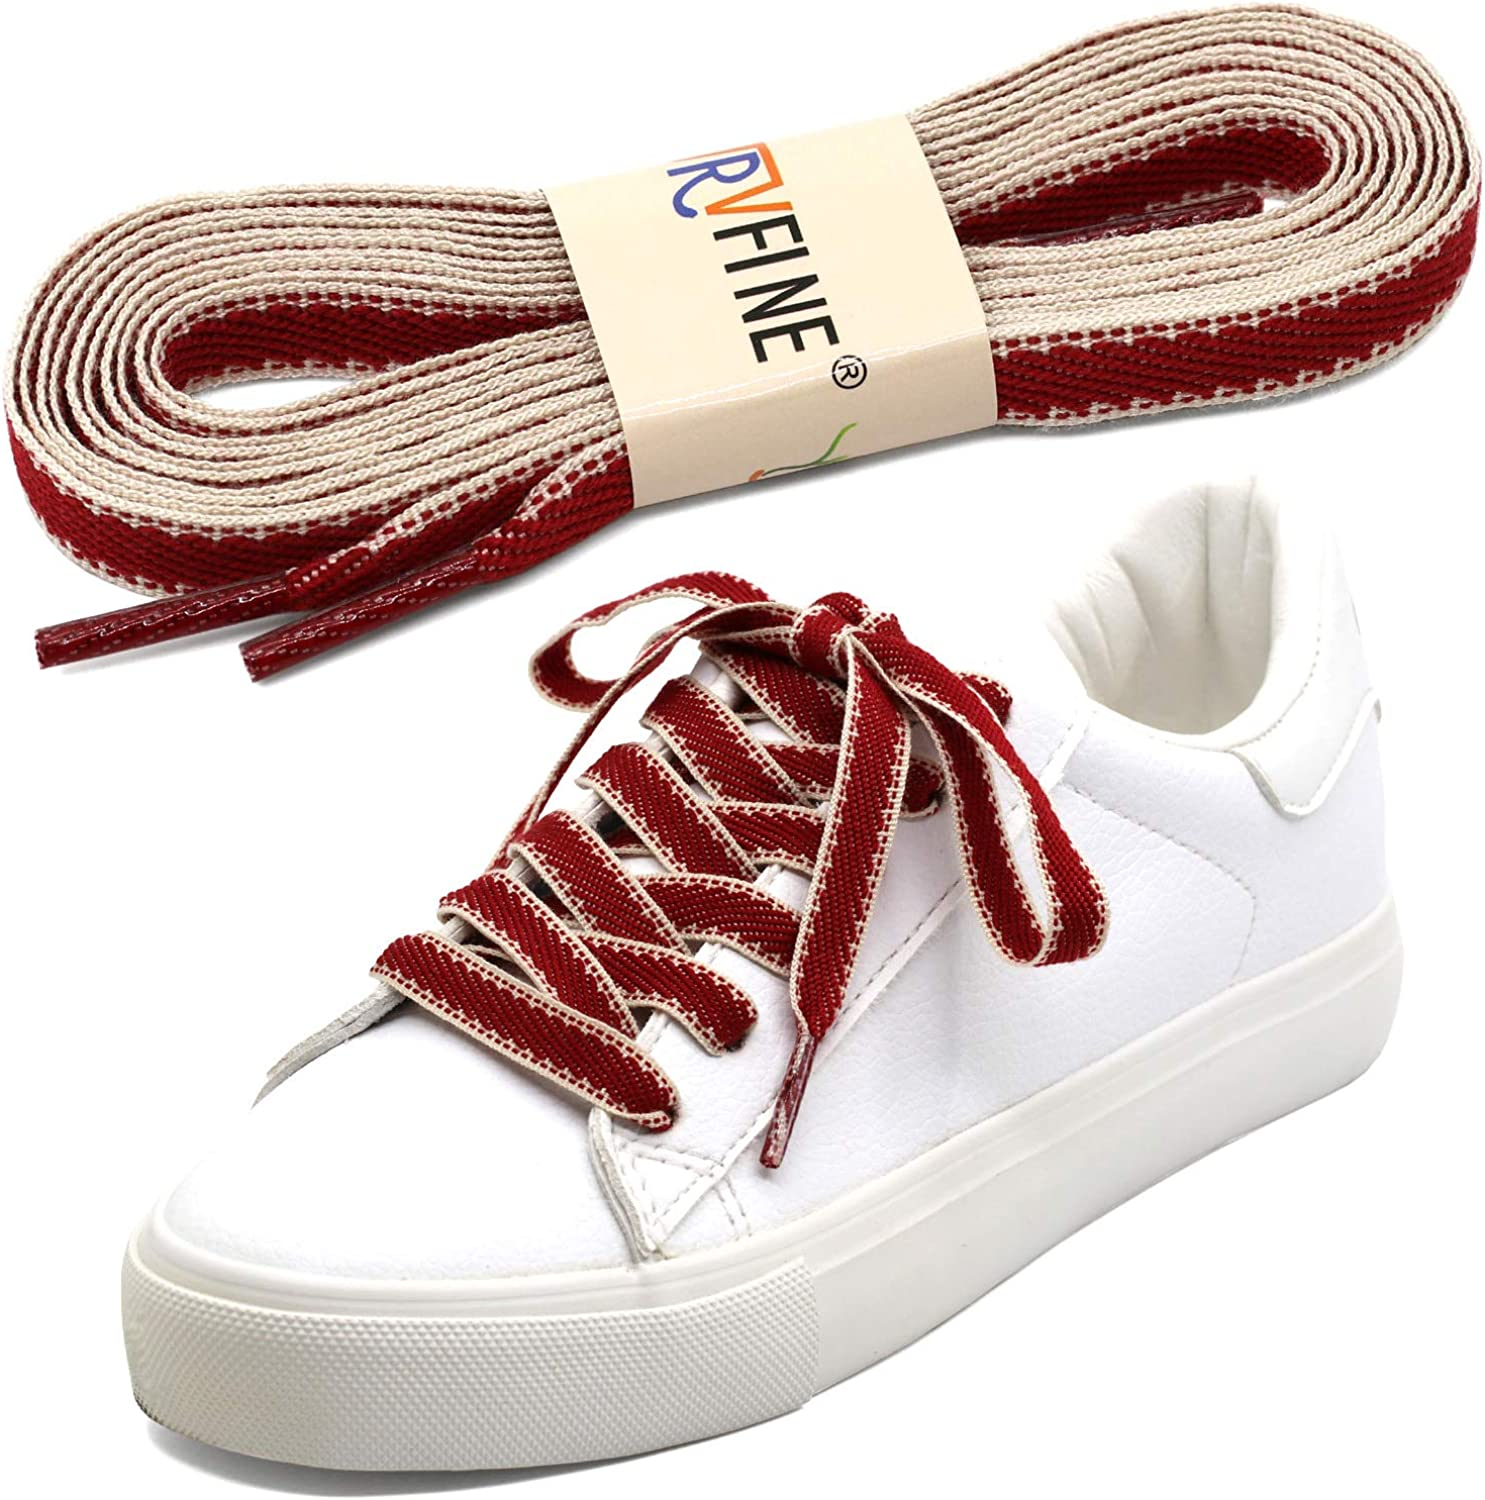 """52/"""" Thick Sneakers Athletic Shoelace String /""""Red//Black/"""" Shoelaces 1,2,12 Pairs"""